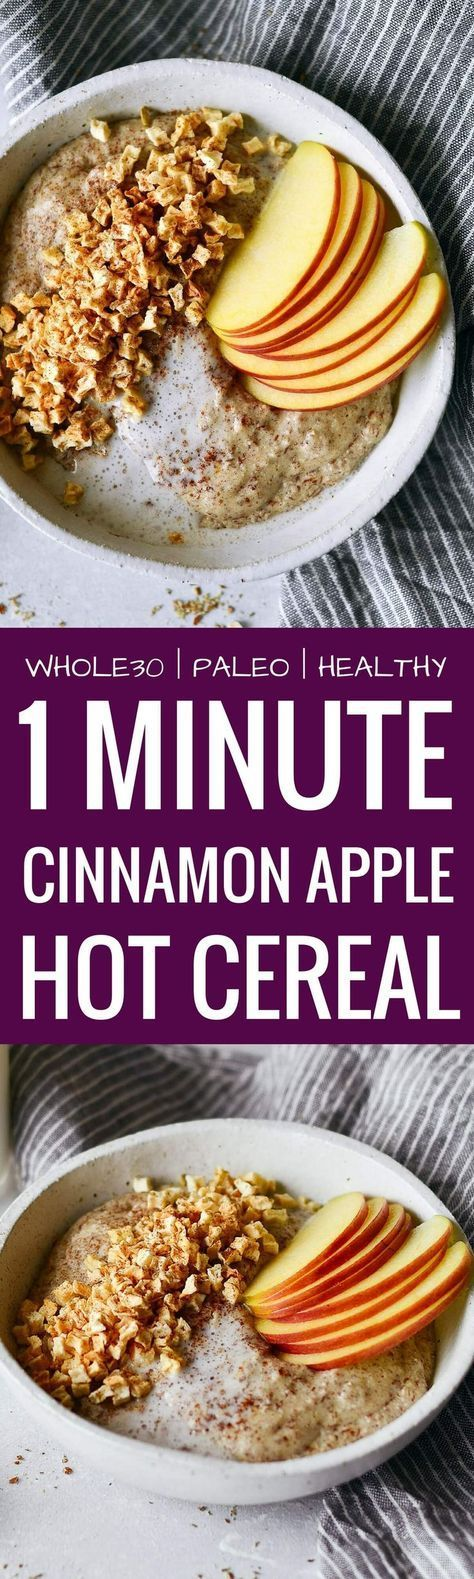 Instant apple cinnamon hot cereal. Rich and creamy whole30 breakfast cereal. Made in one minute! Can be made ahead. Paleo, gluten free, sugar free, and dairy free. A great alternative to malt-o-meal and oatmeal. Deliciously addicting and topped with apple